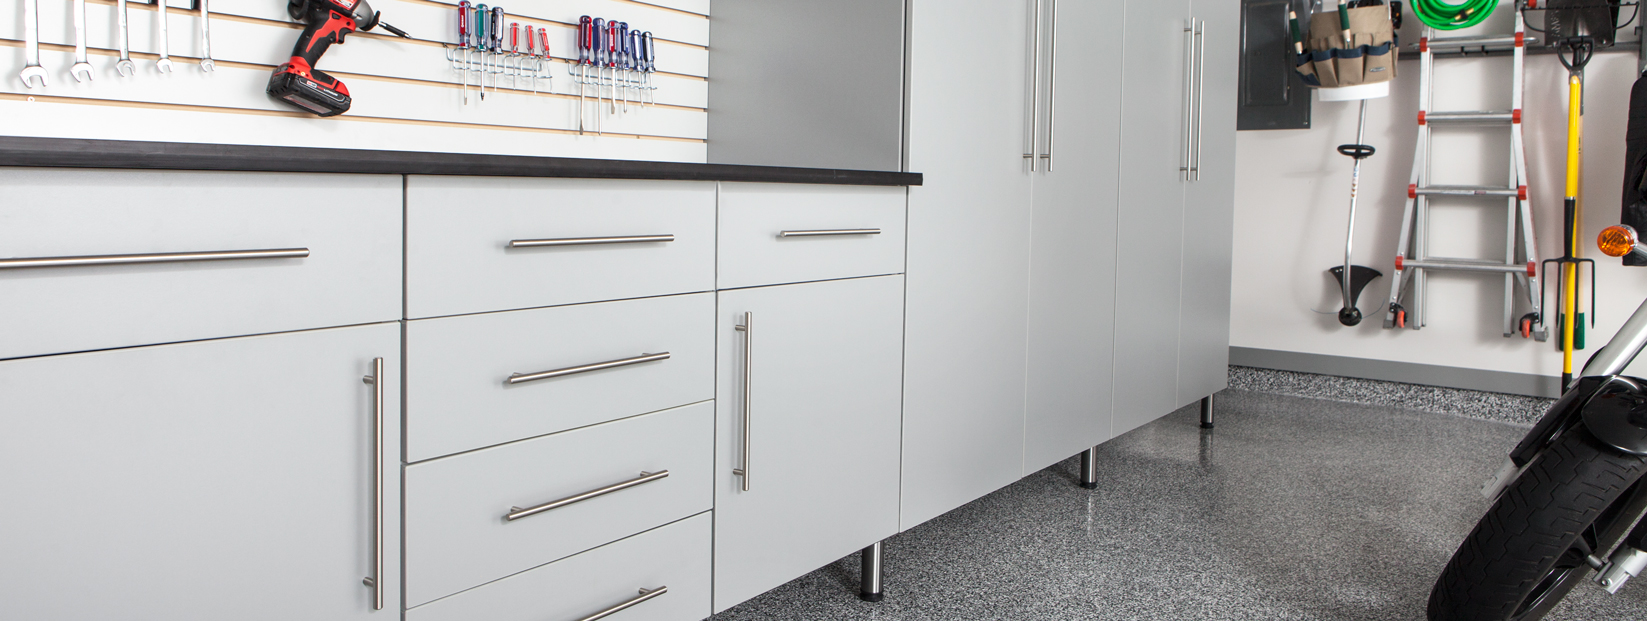 Garage Cabinet Systems Boston